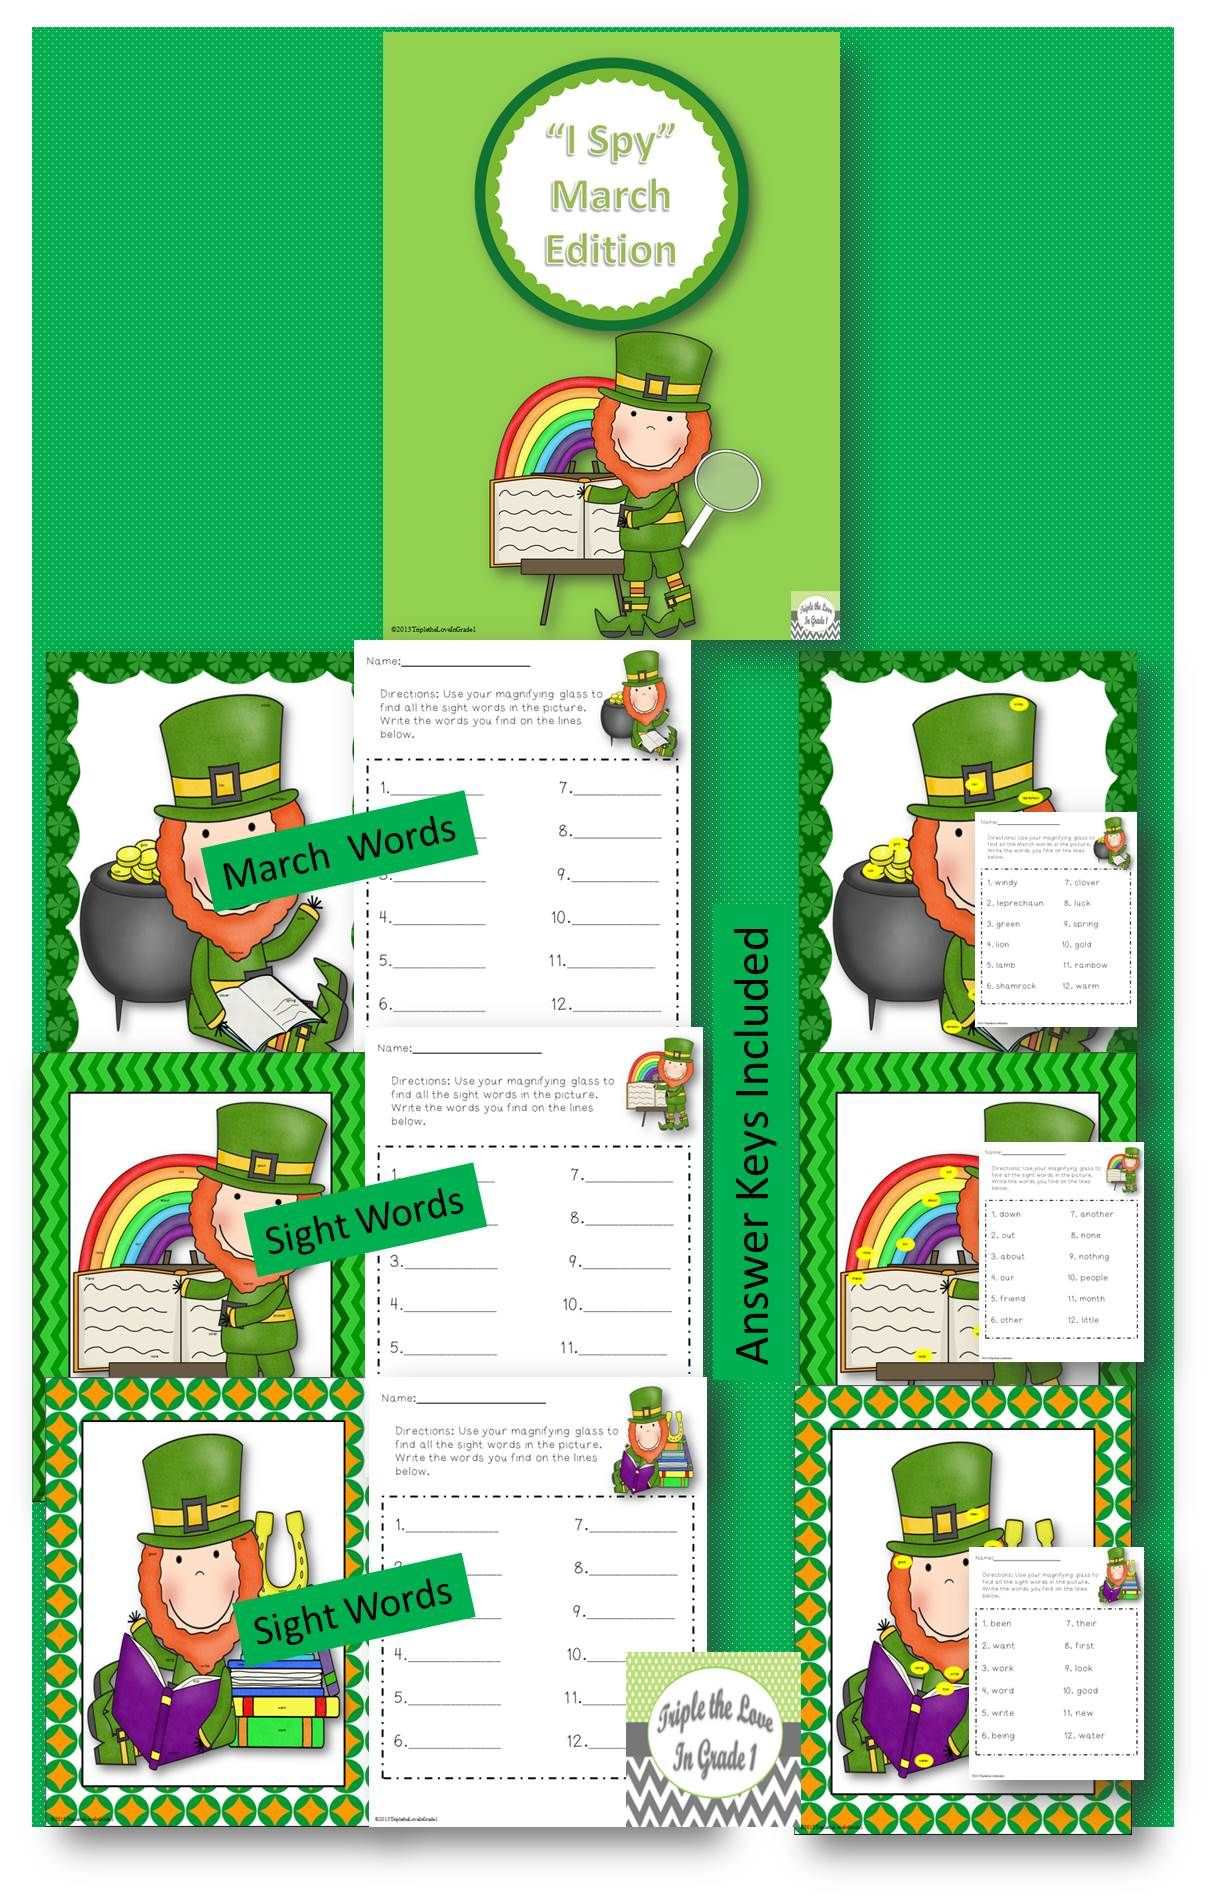 Look And Find March Edition March Words Amp Sight Words